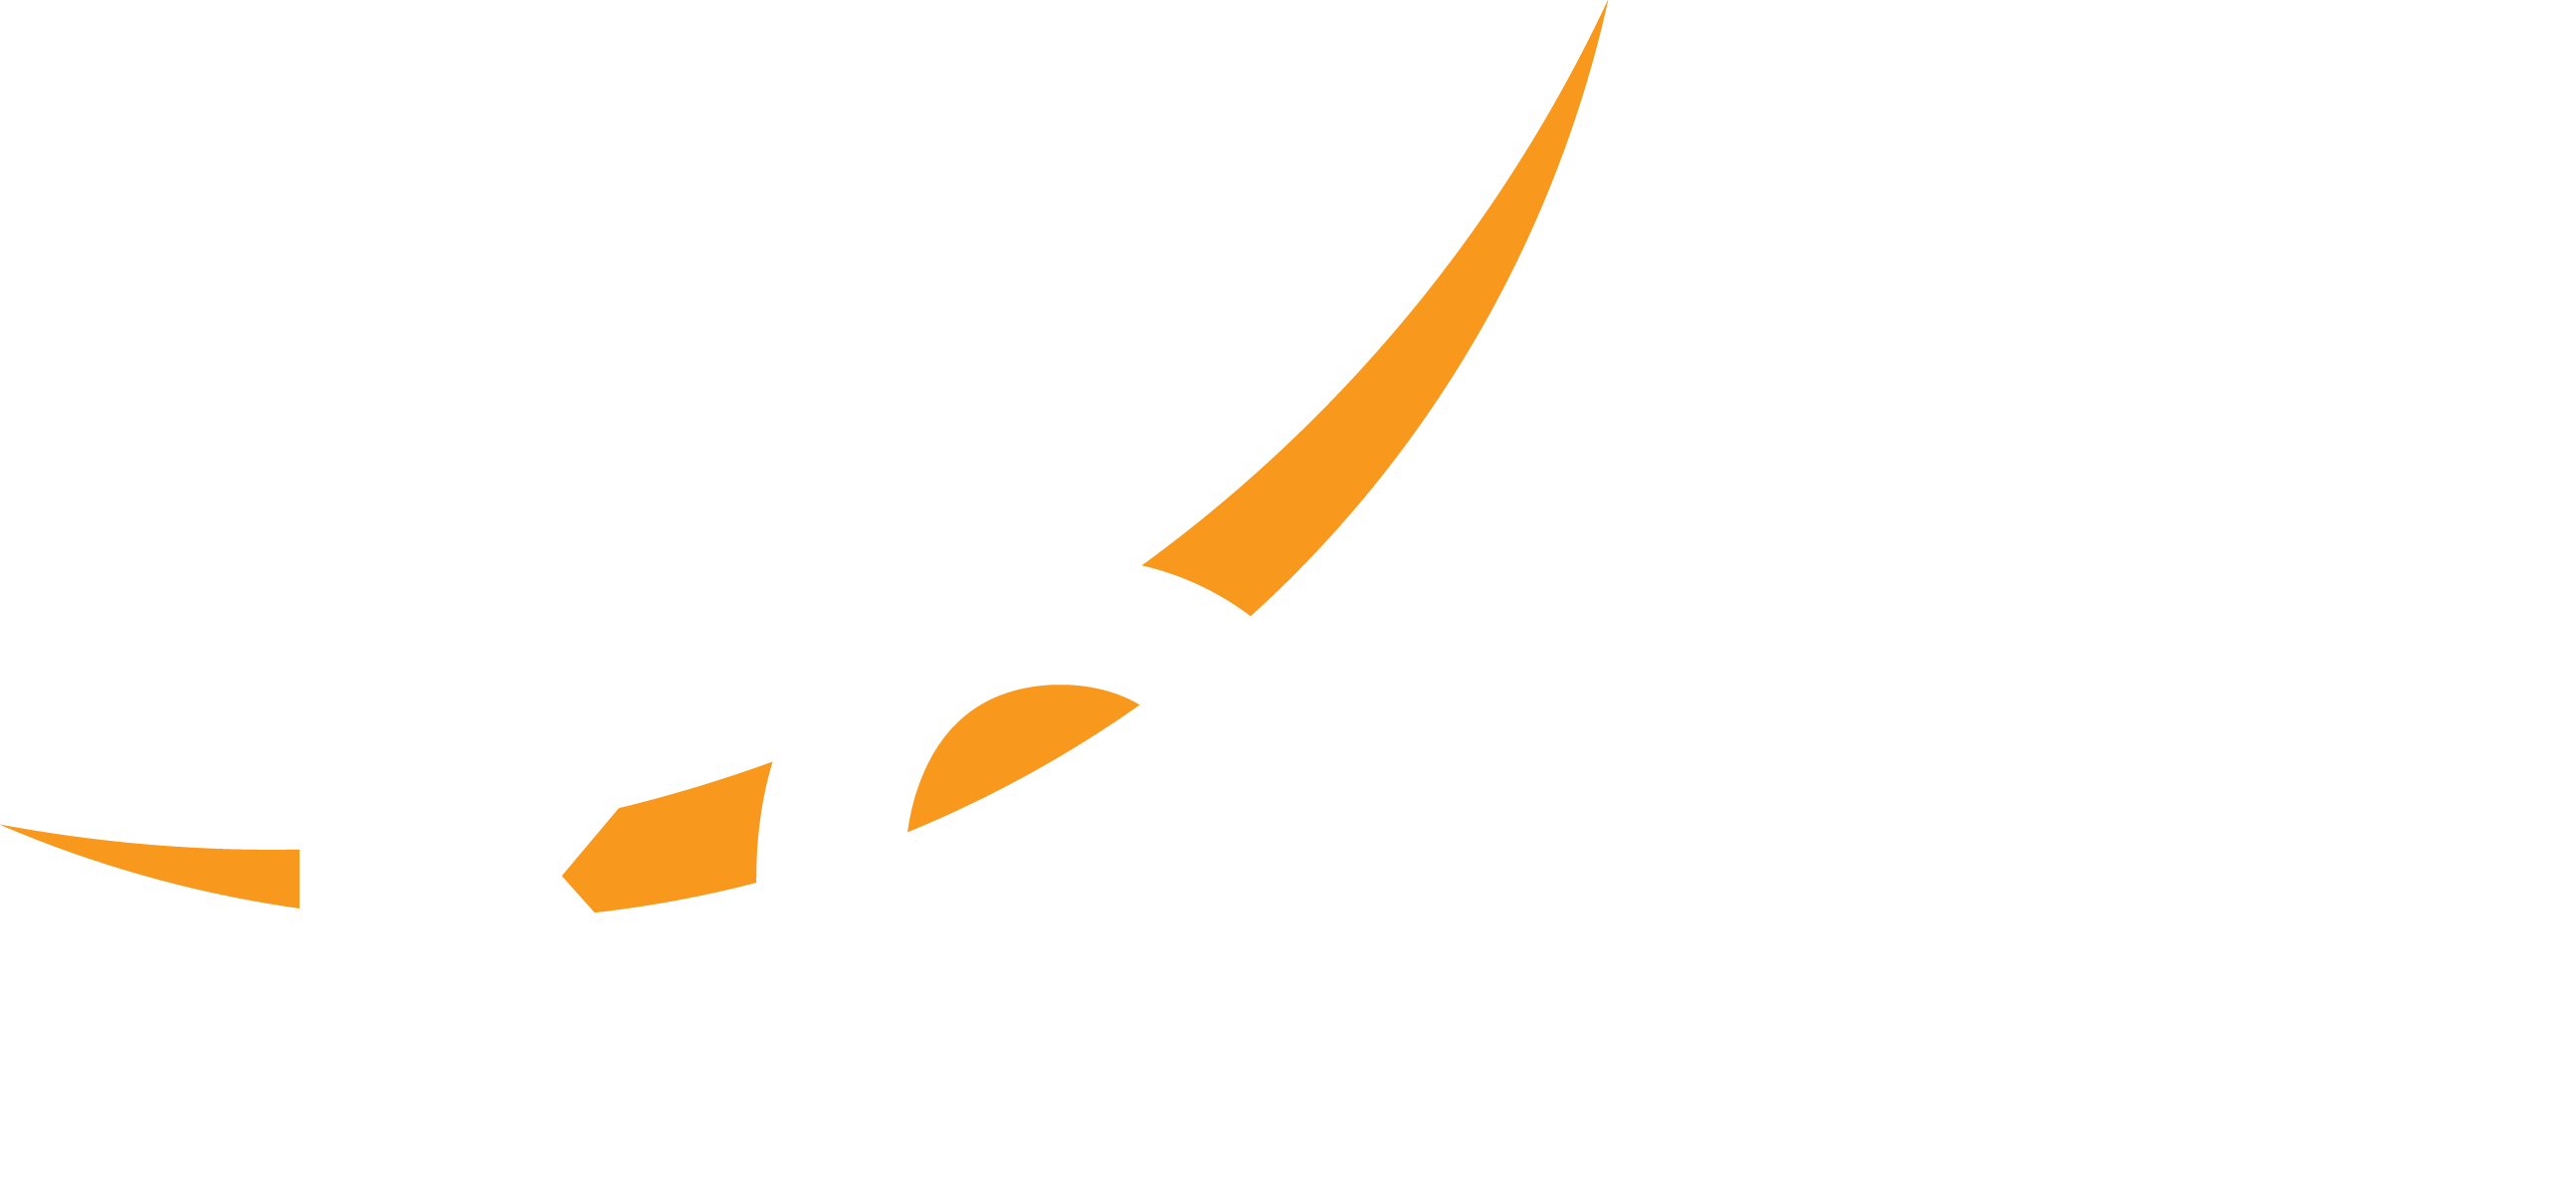 16-logo-kore-wireless-footer-icon-1.png